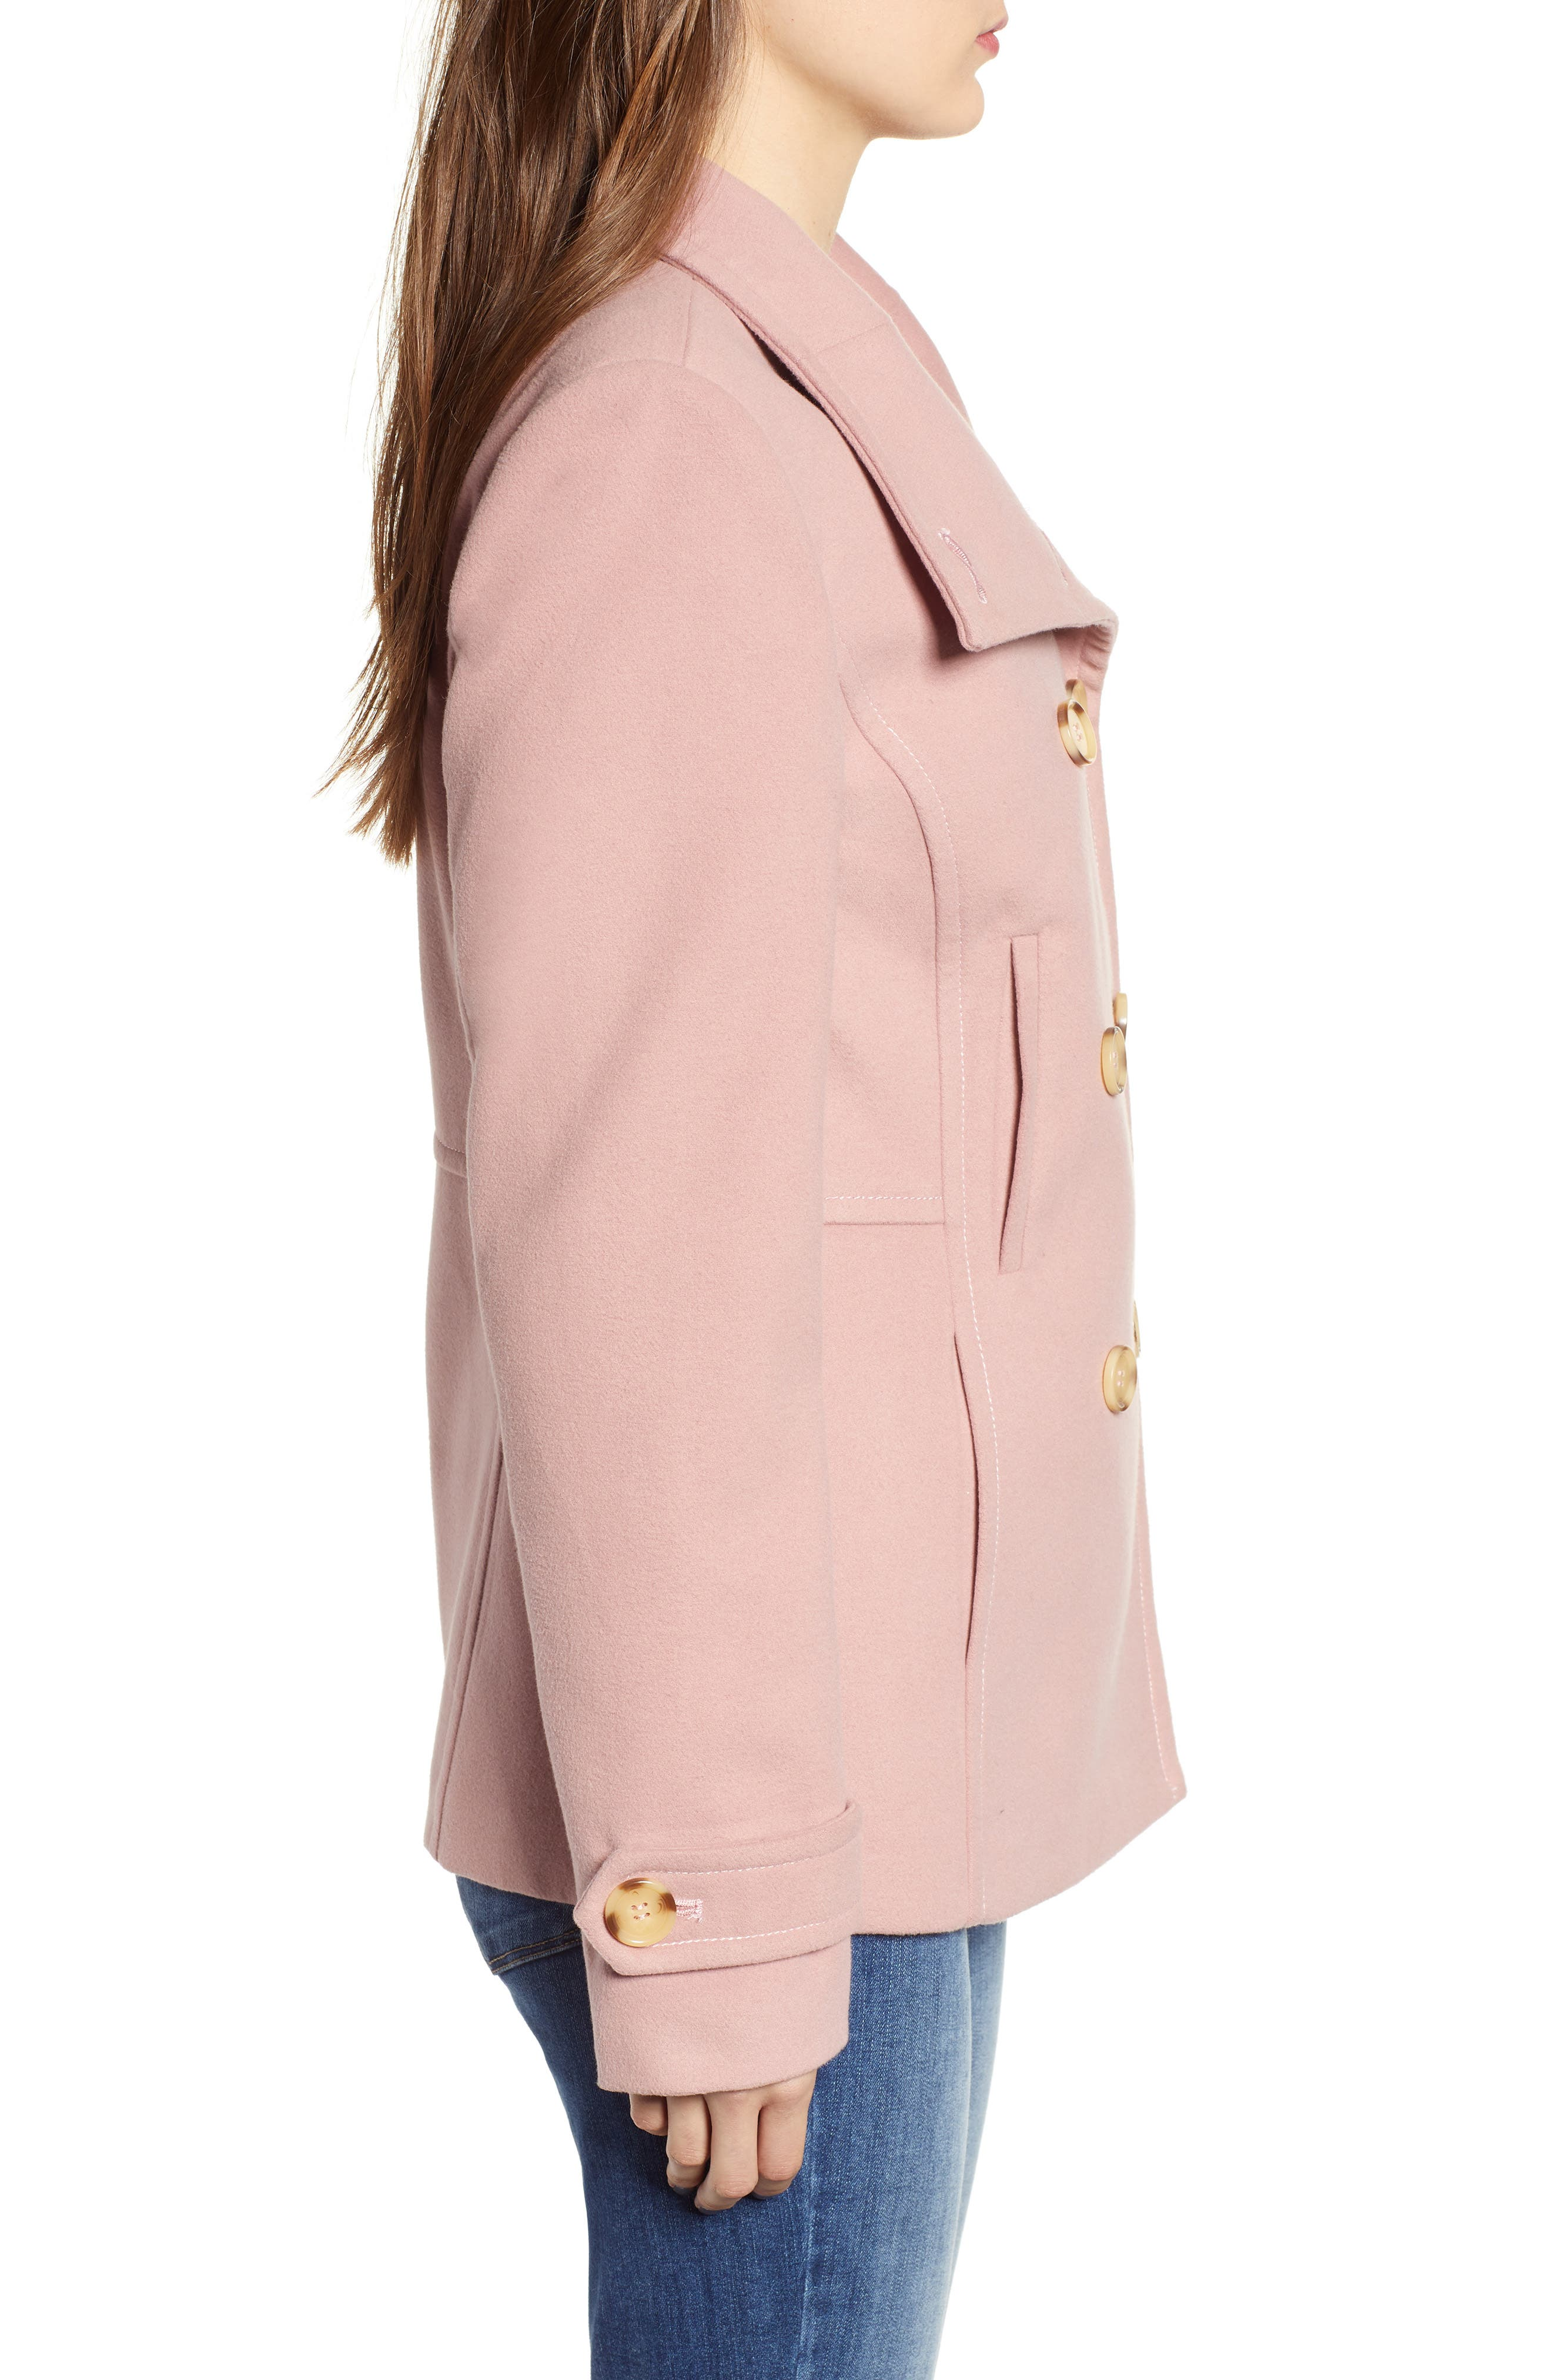 THREAD & SUPPLY,                             Double Breasted Peacoat,                             Alternate thumbnail 4, color,                             BLUSH